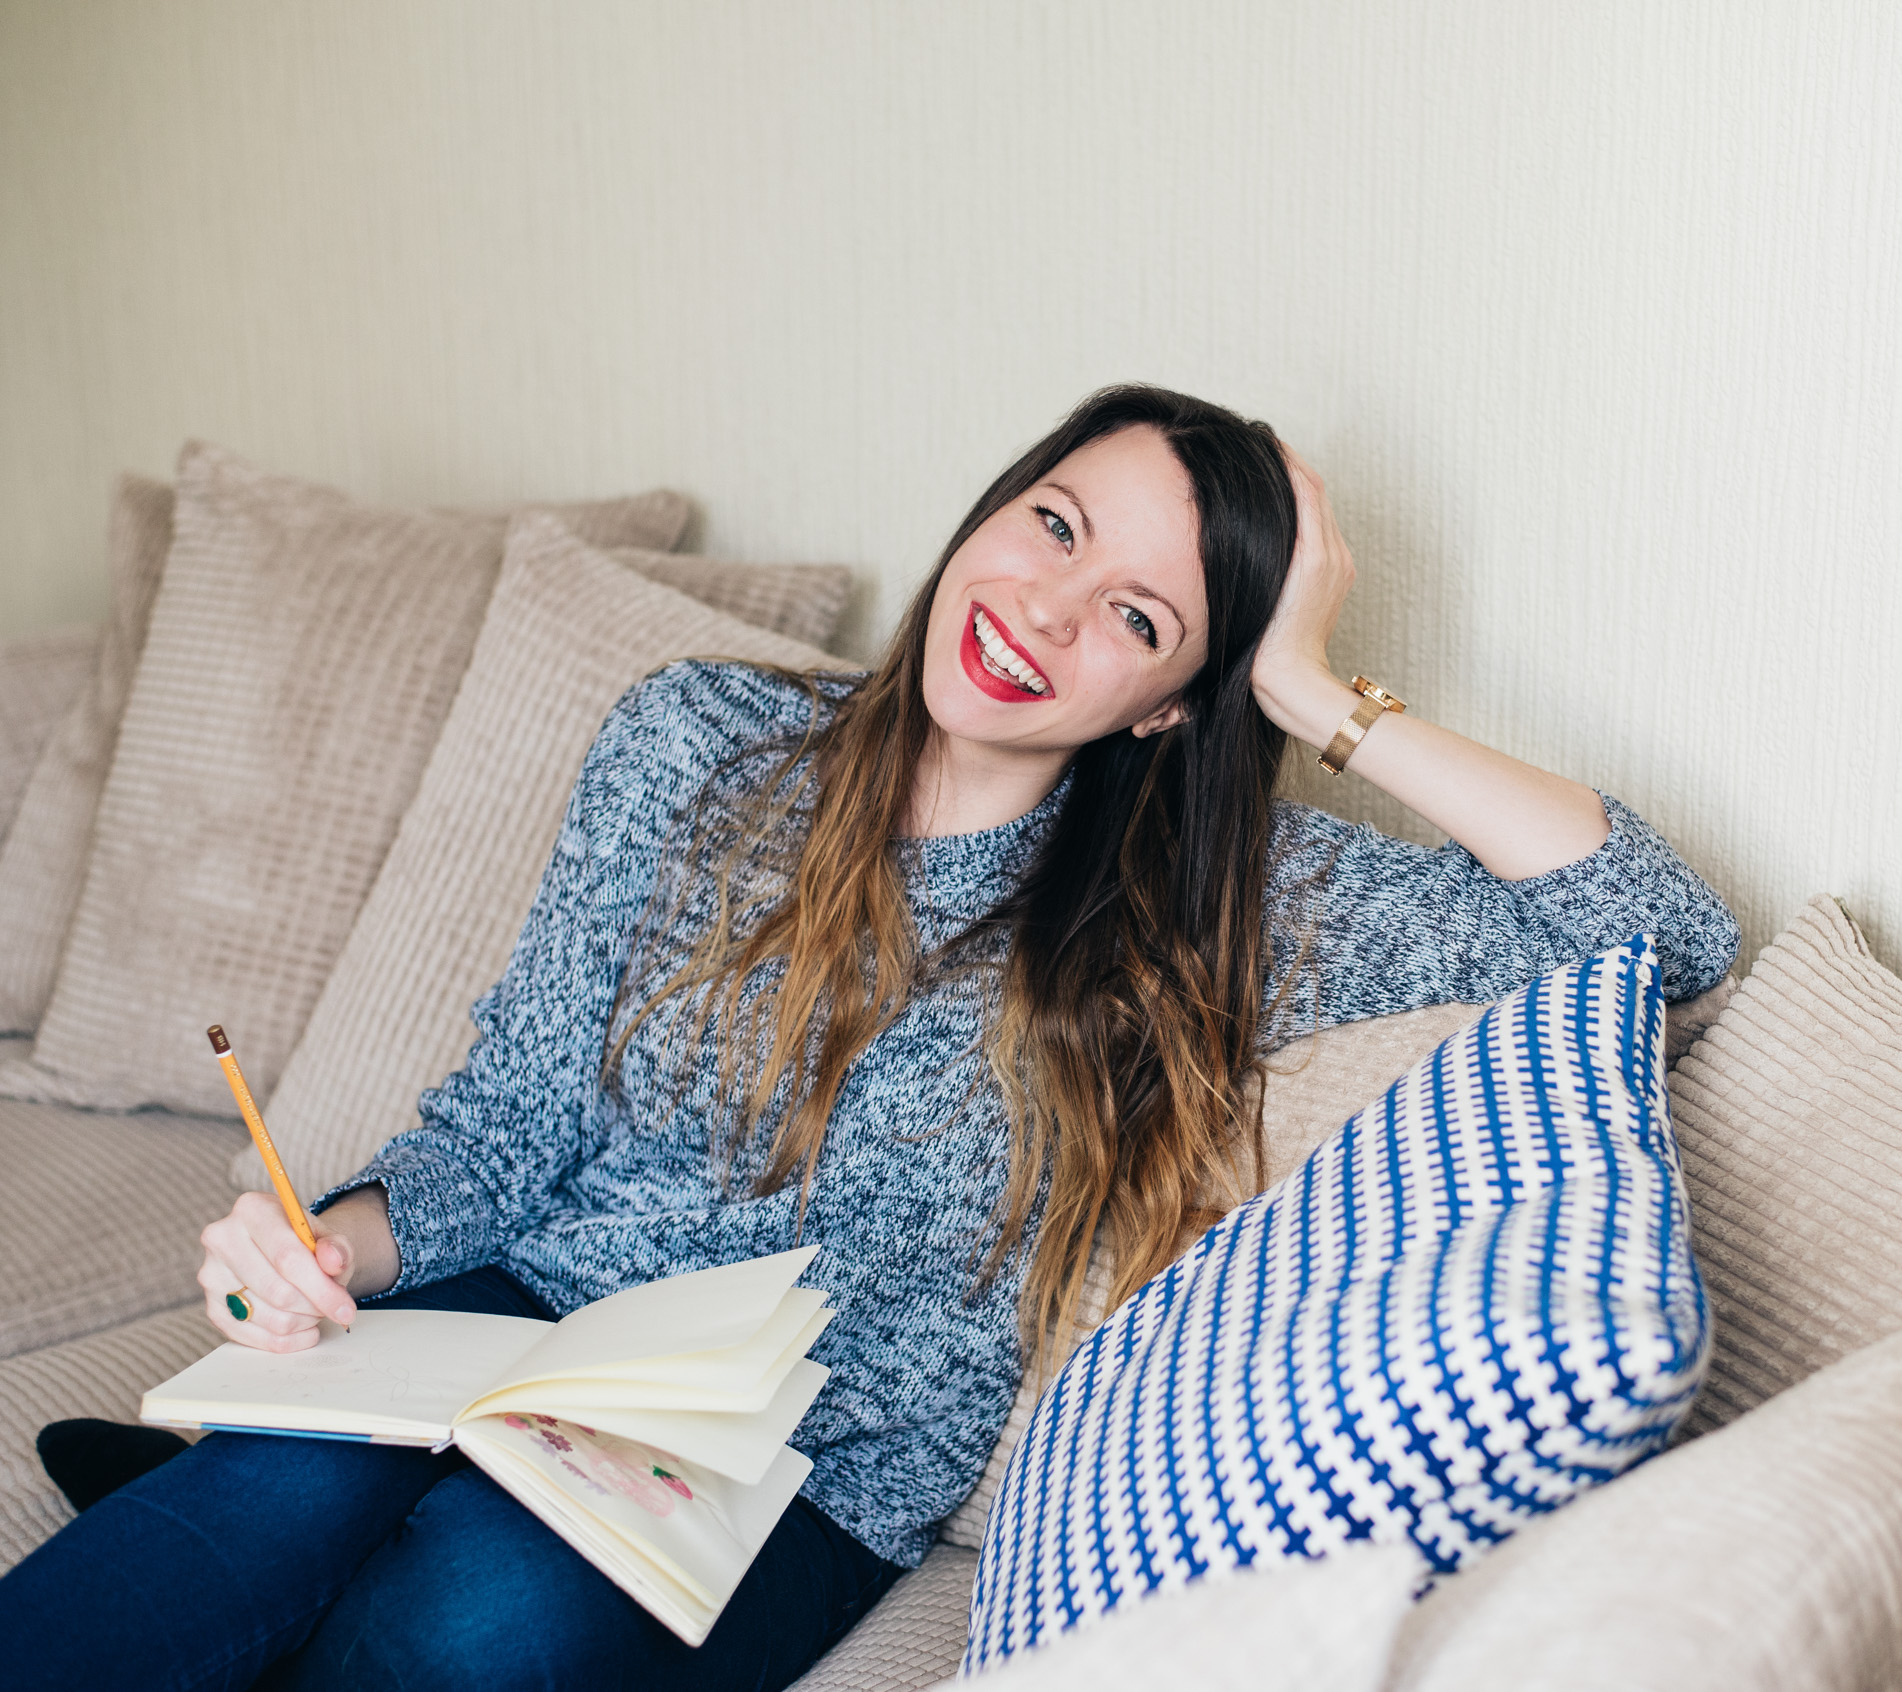 Life Coach and Illustrator, Emma Lou